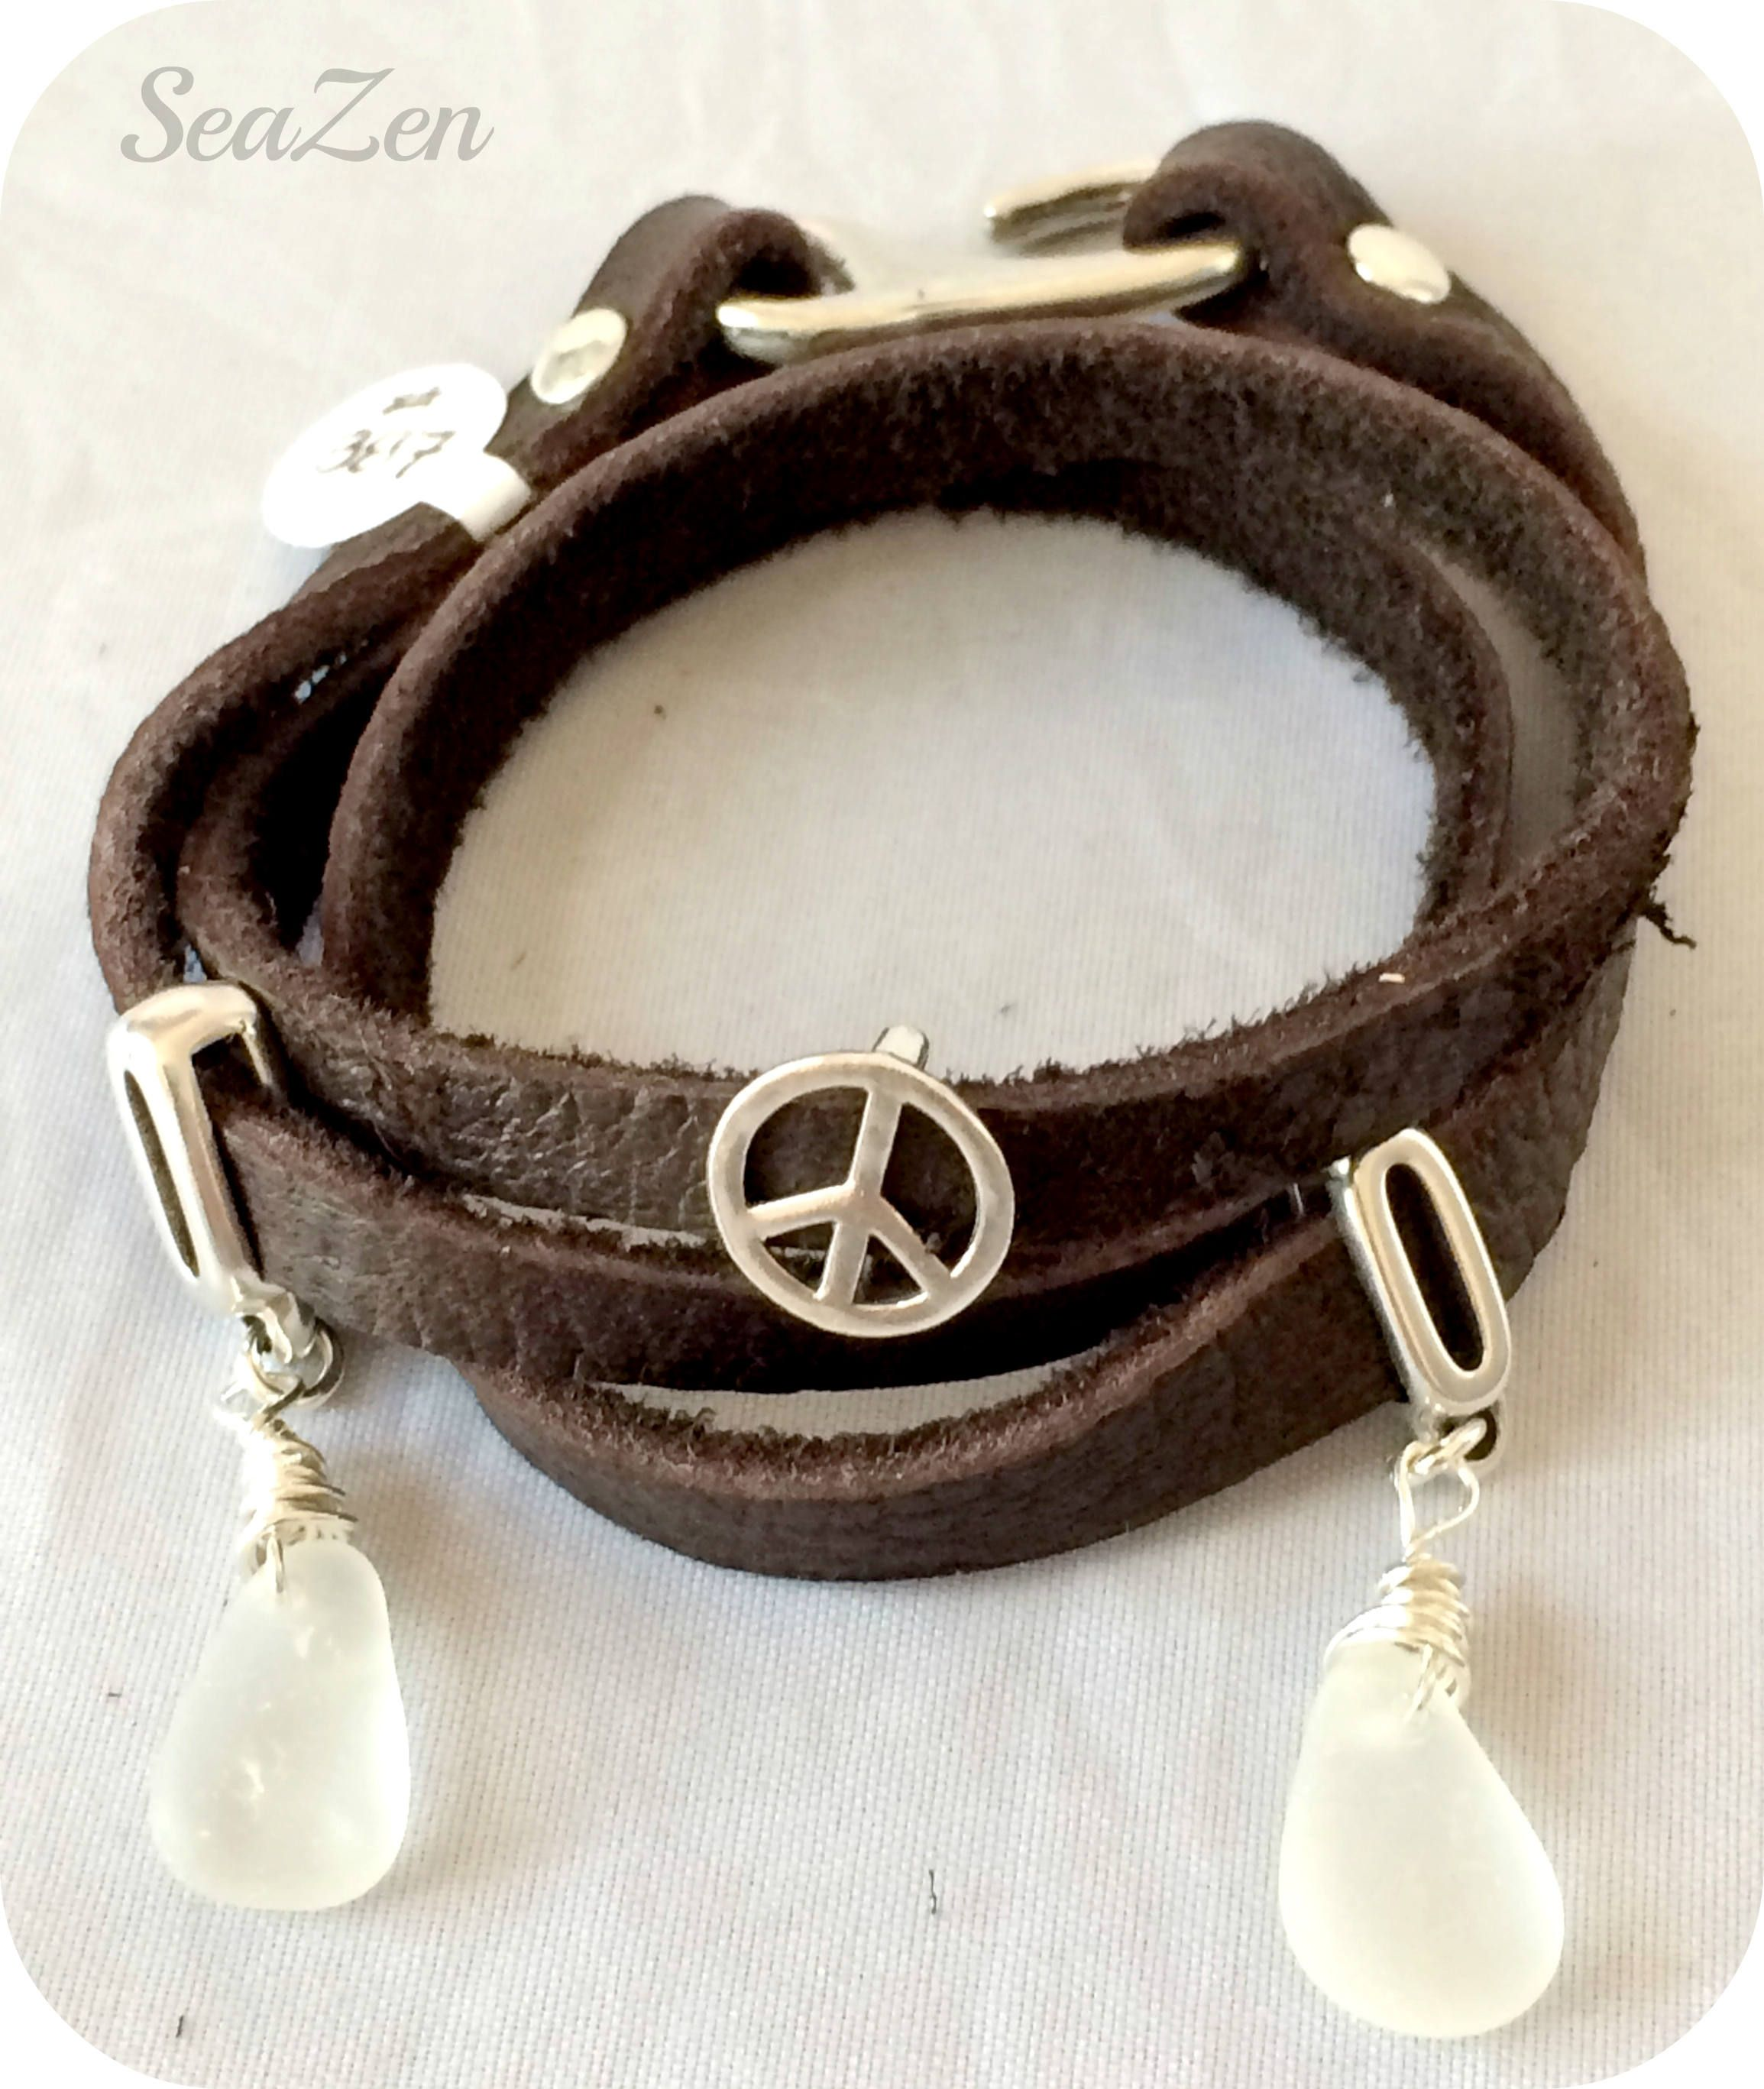 bracelet jewelry set gift boho womens il p peace sign mom fullxfull girlfriend mood her for teen leather faux